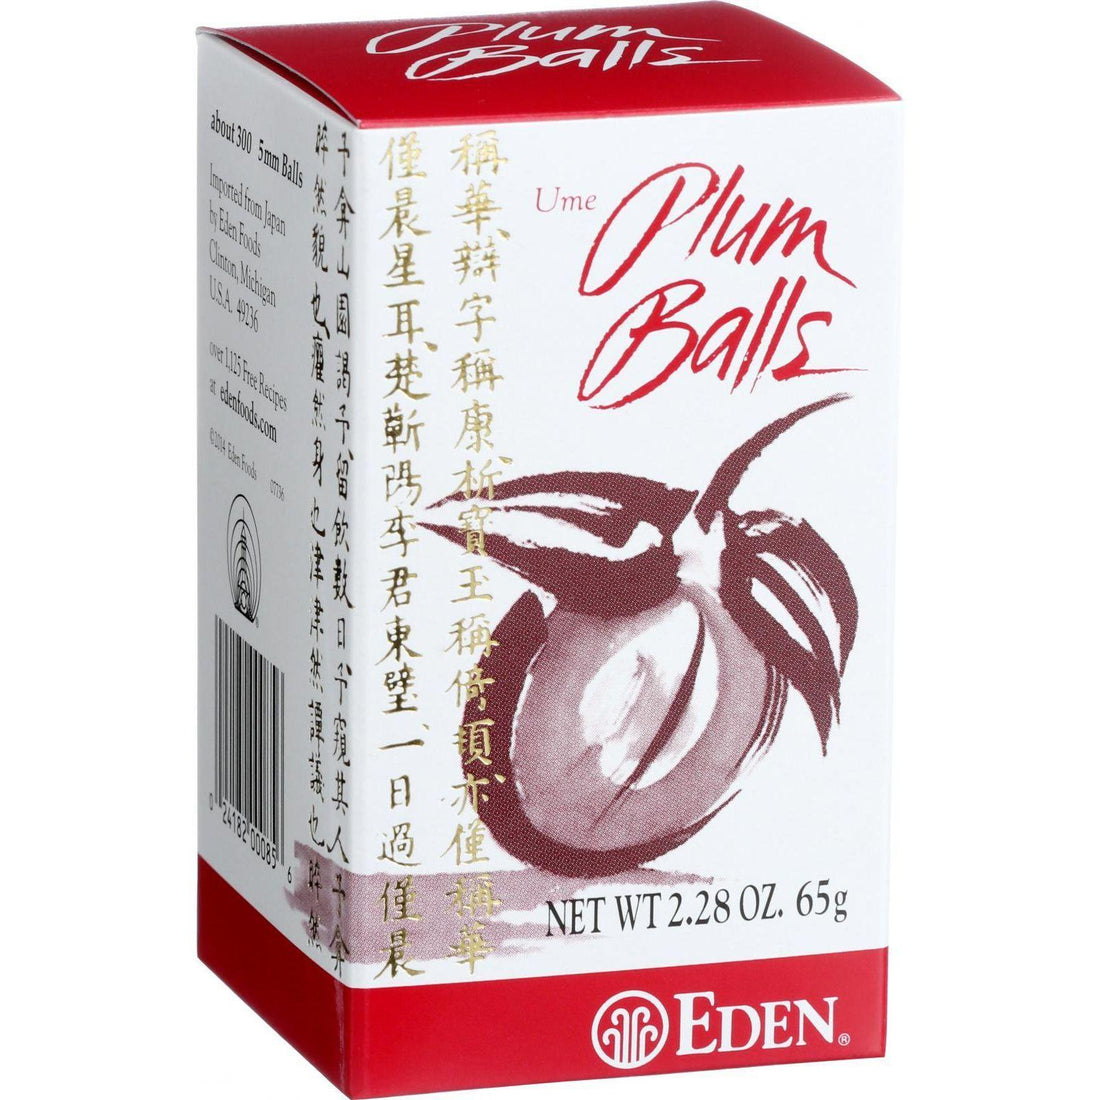 Mother Mantis: Eden Foods Ume Plum Balls - 2.28 Oz Eden Foods